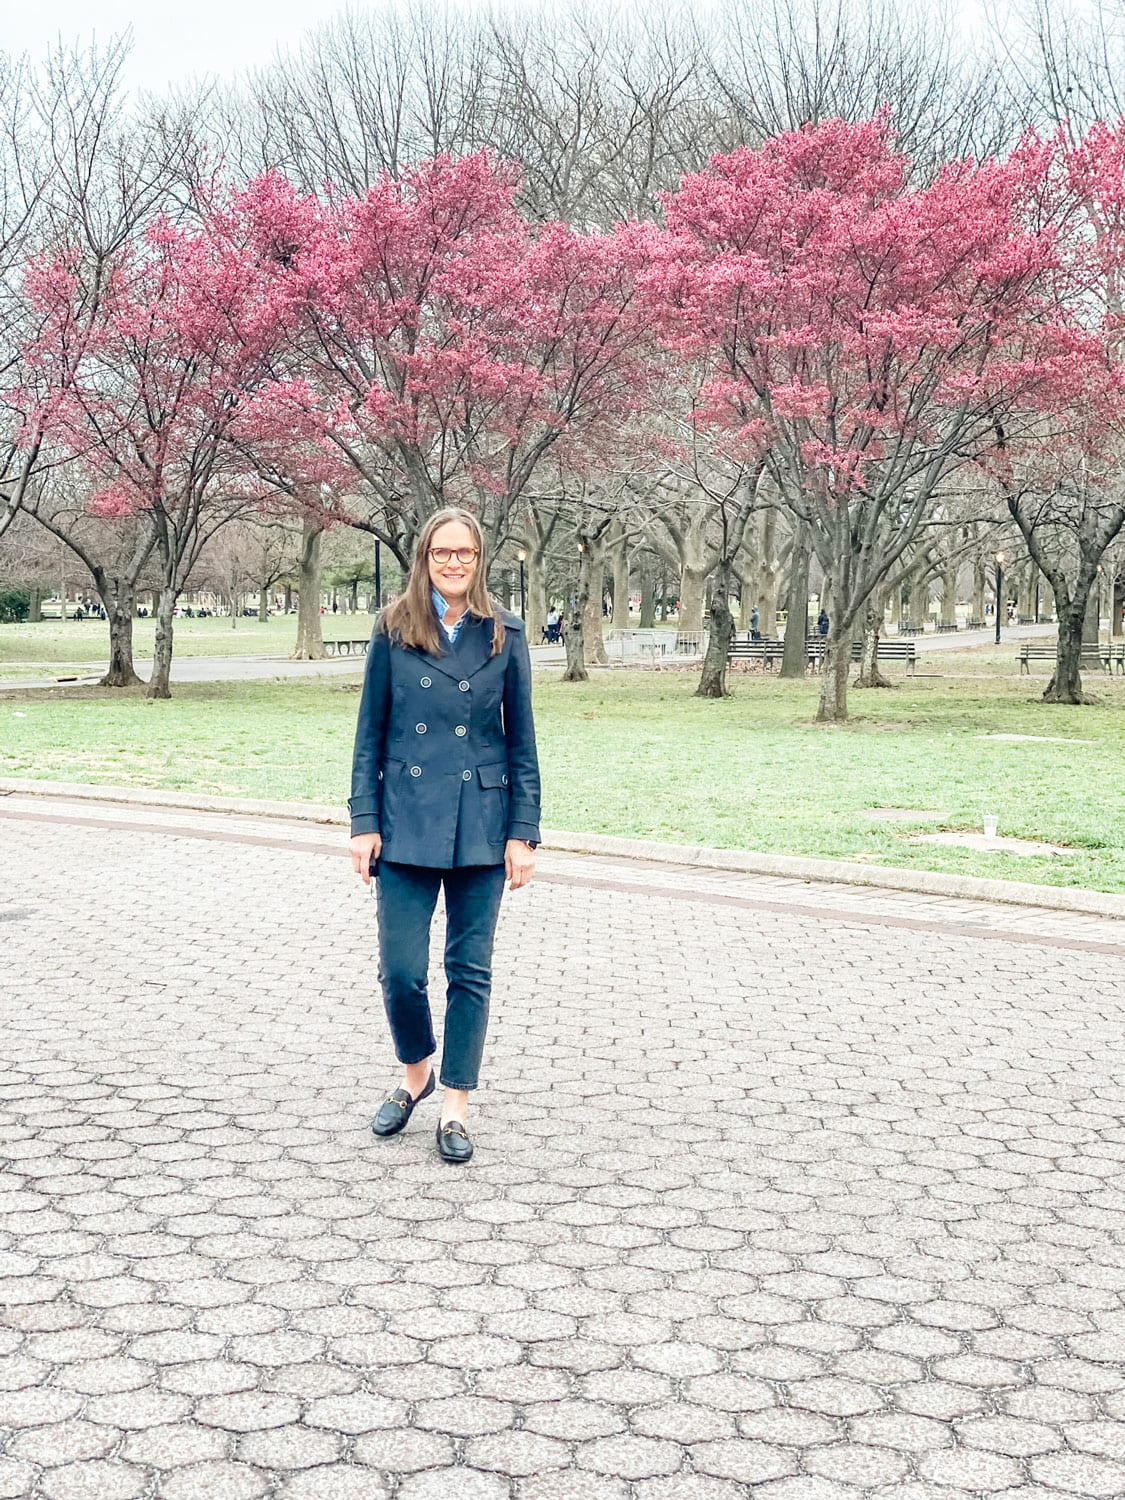 woman wearing black burberry in spring with pink flowering trees